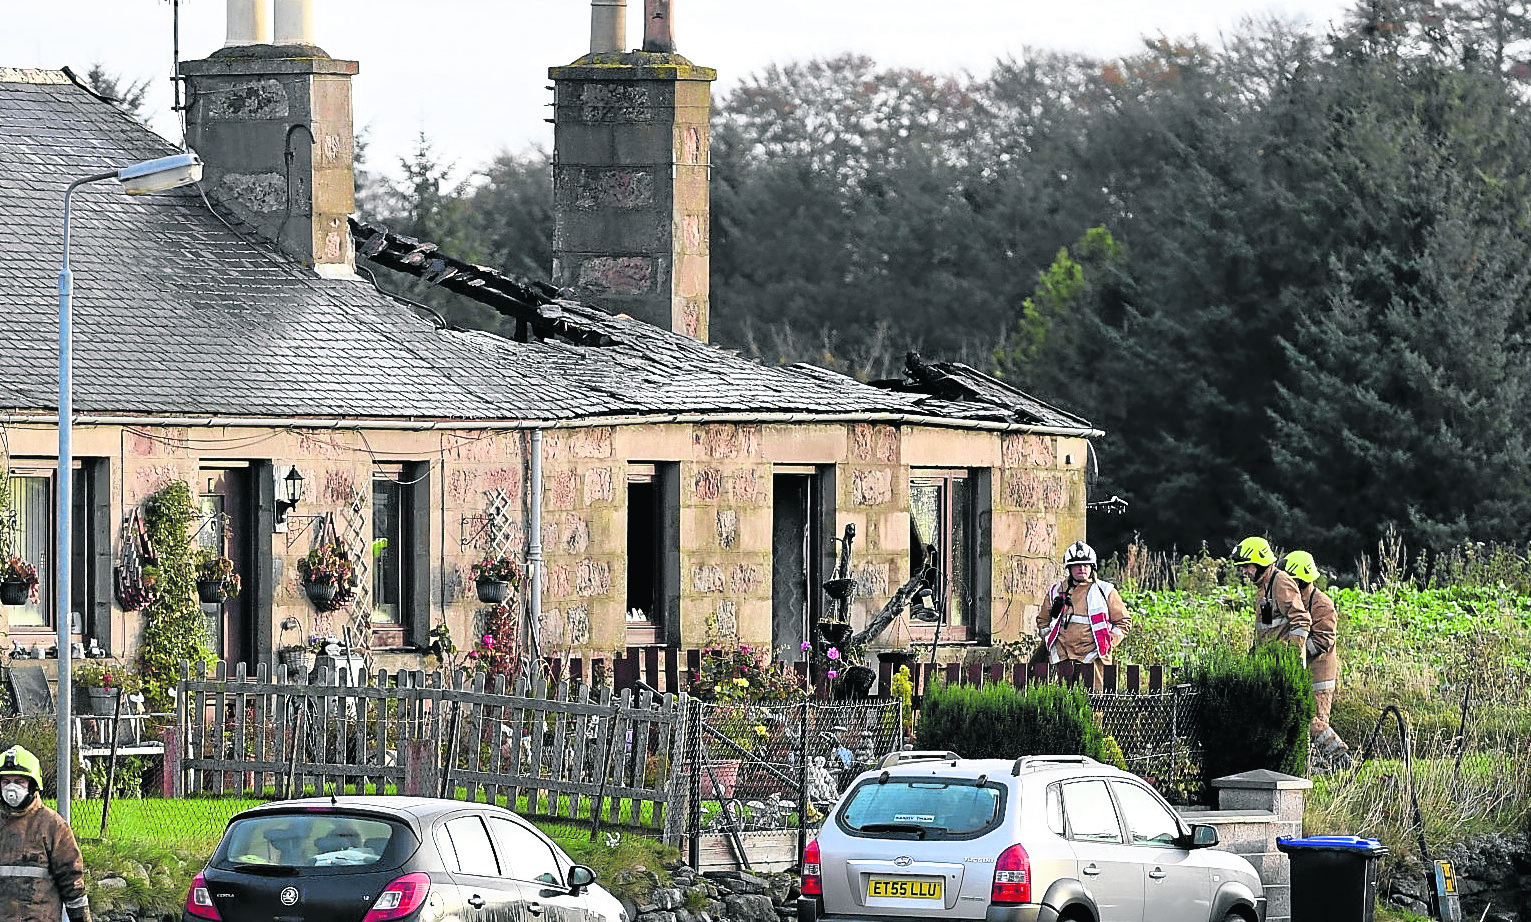 Firefighters at the scene in Rhynie